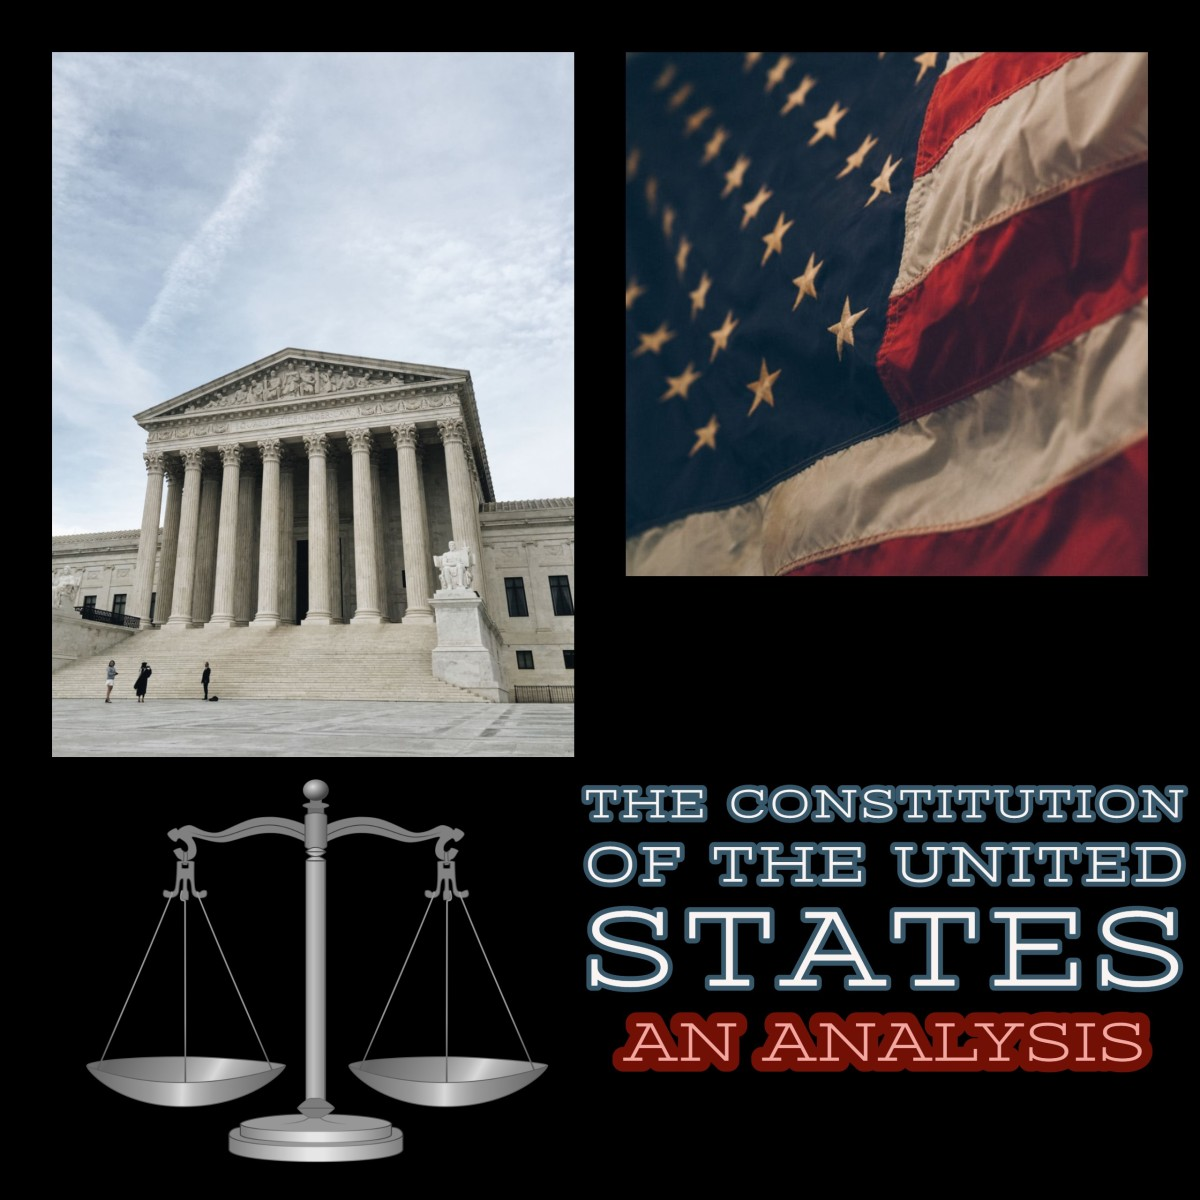 The Constitution of the United States: An Analysis